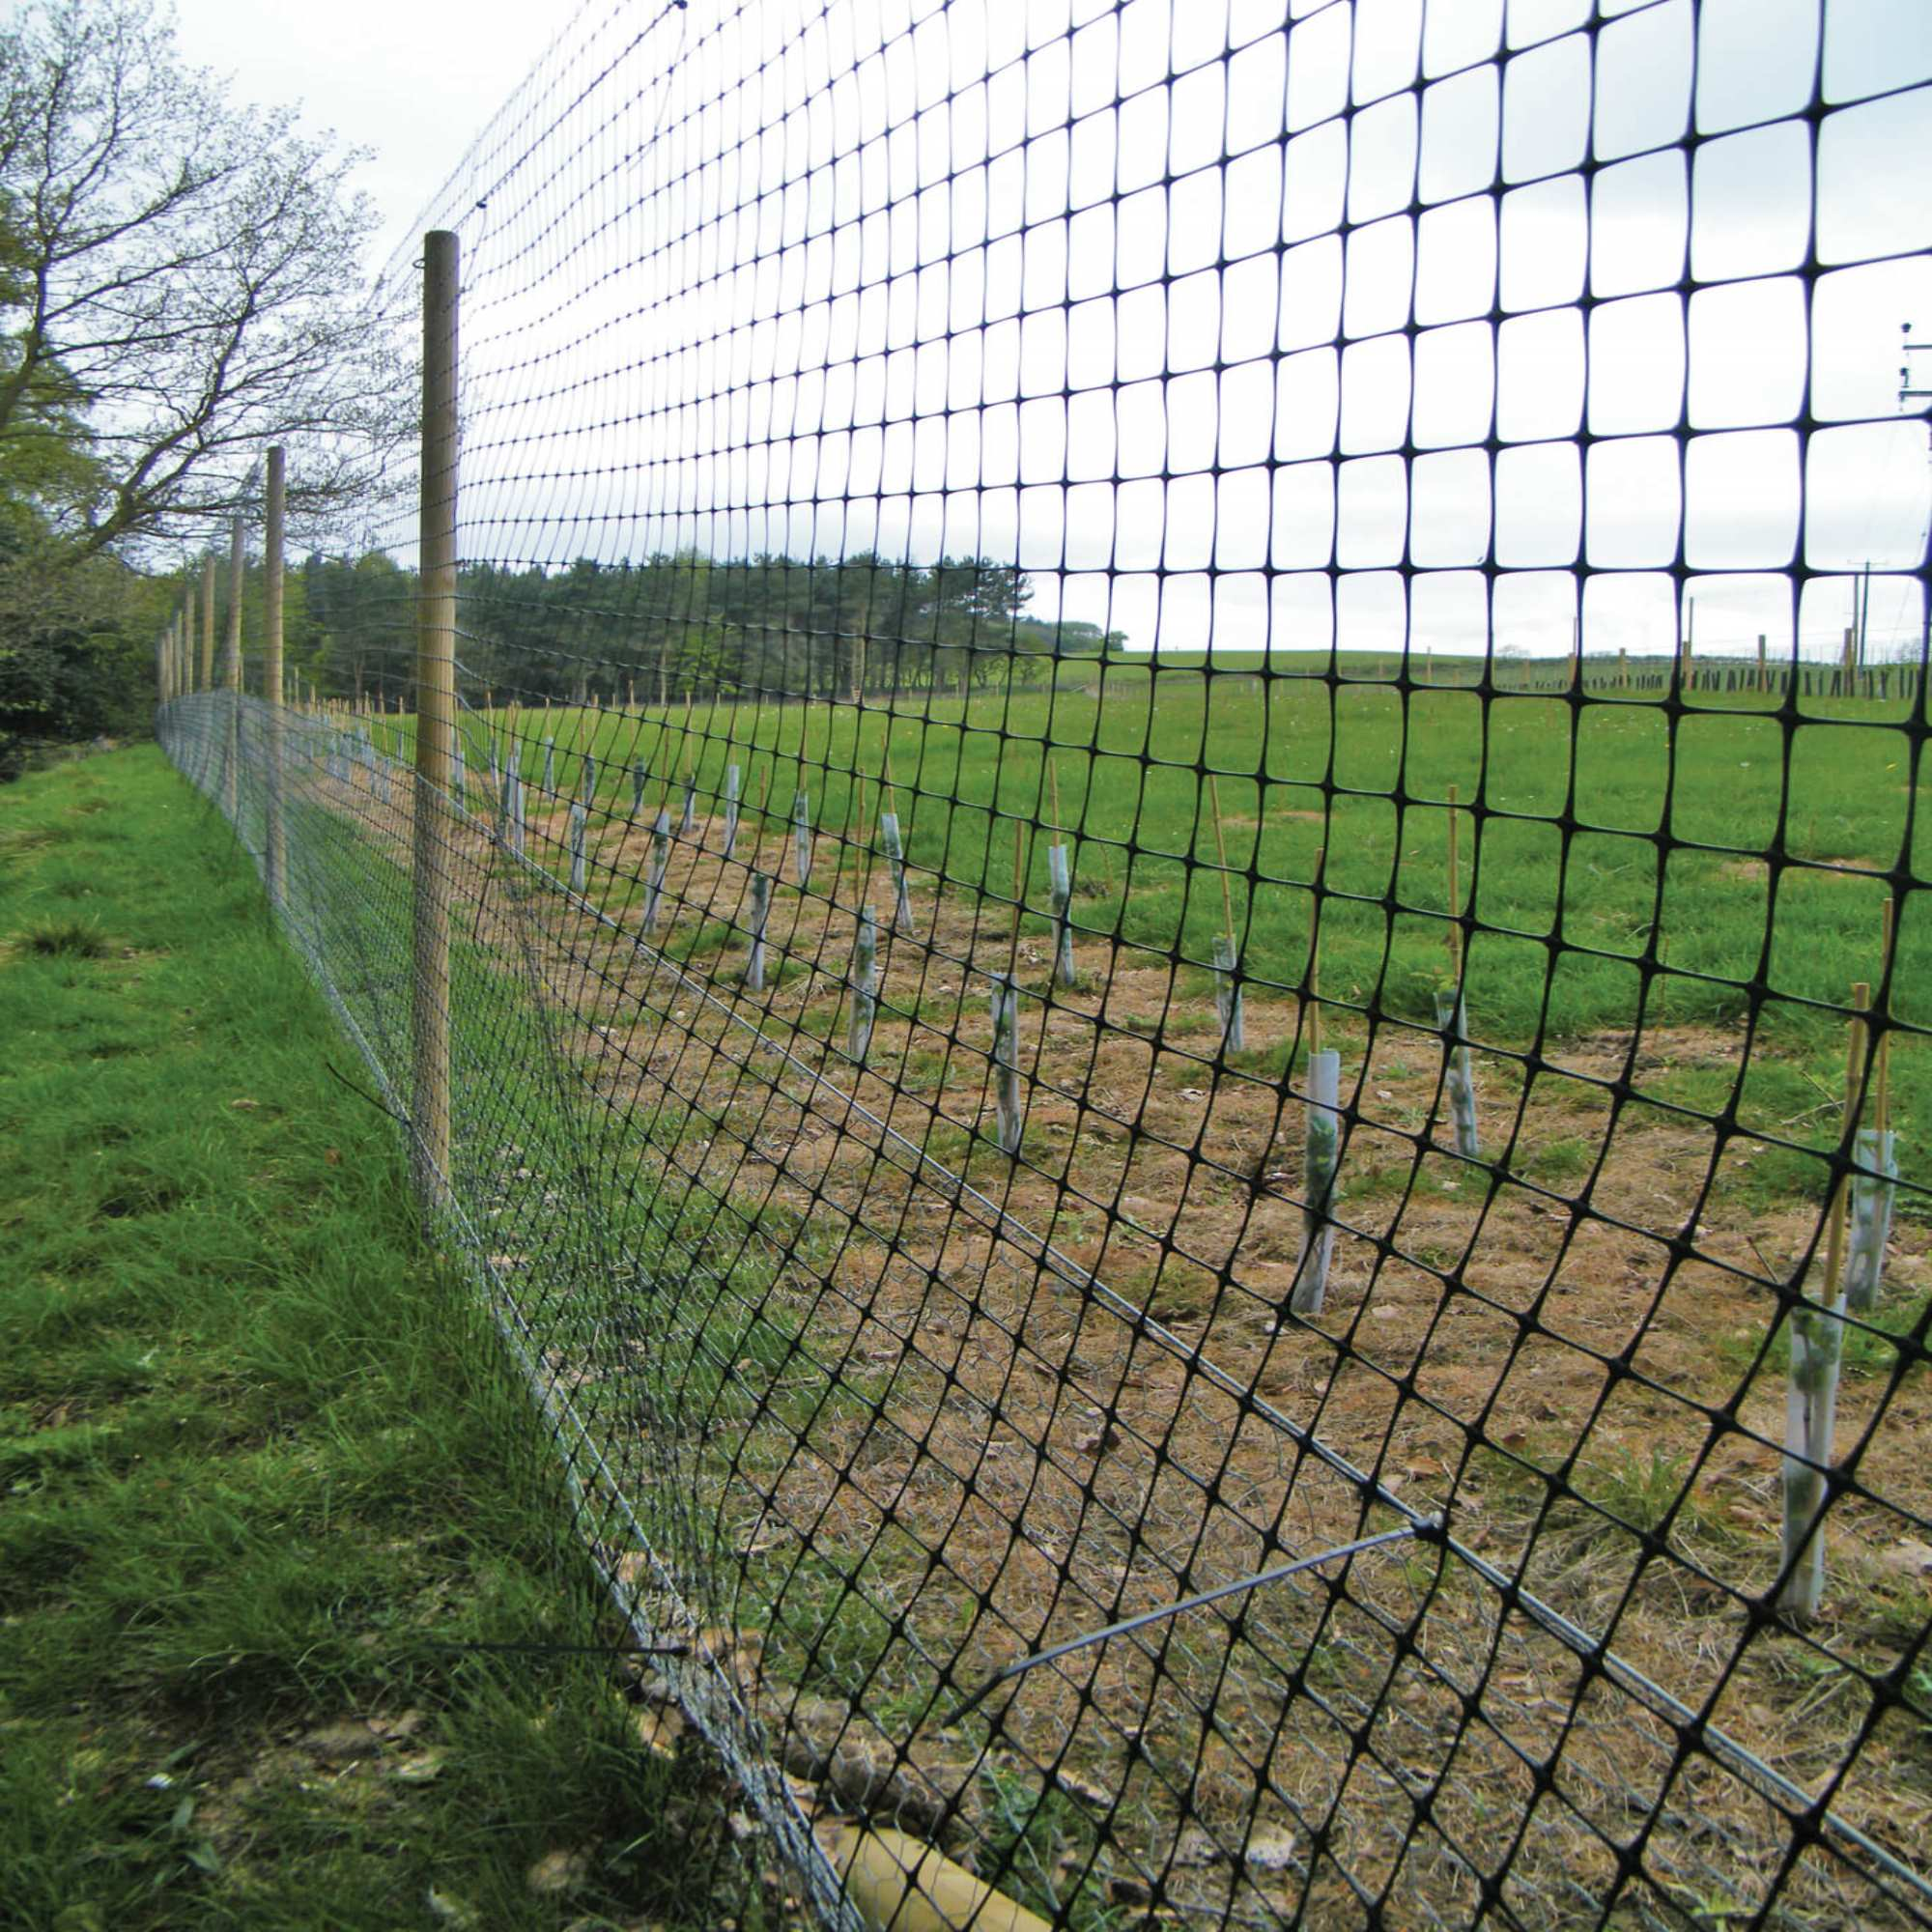 Stock & Animal Fencing